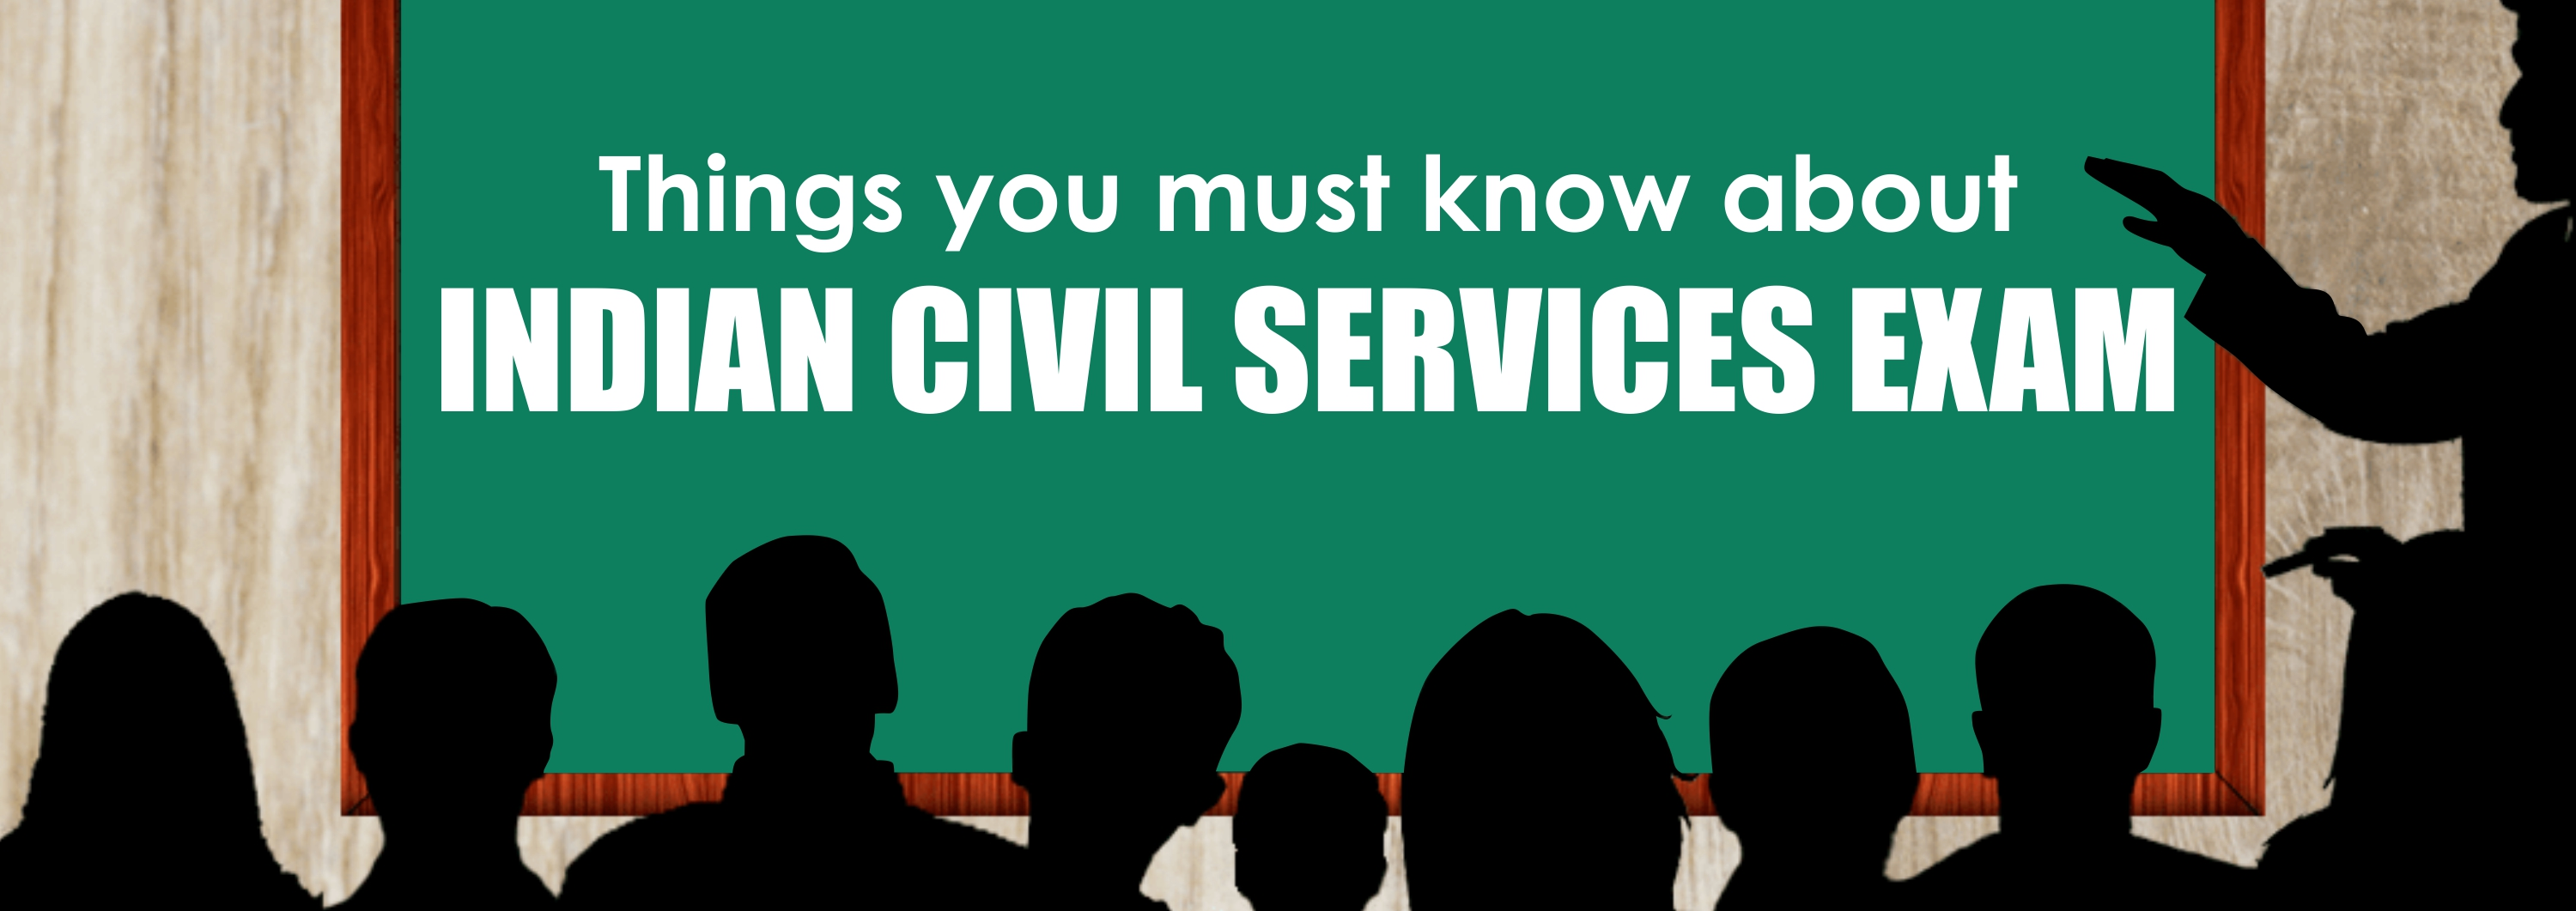 Things you must know about Indian Civil Services Exam